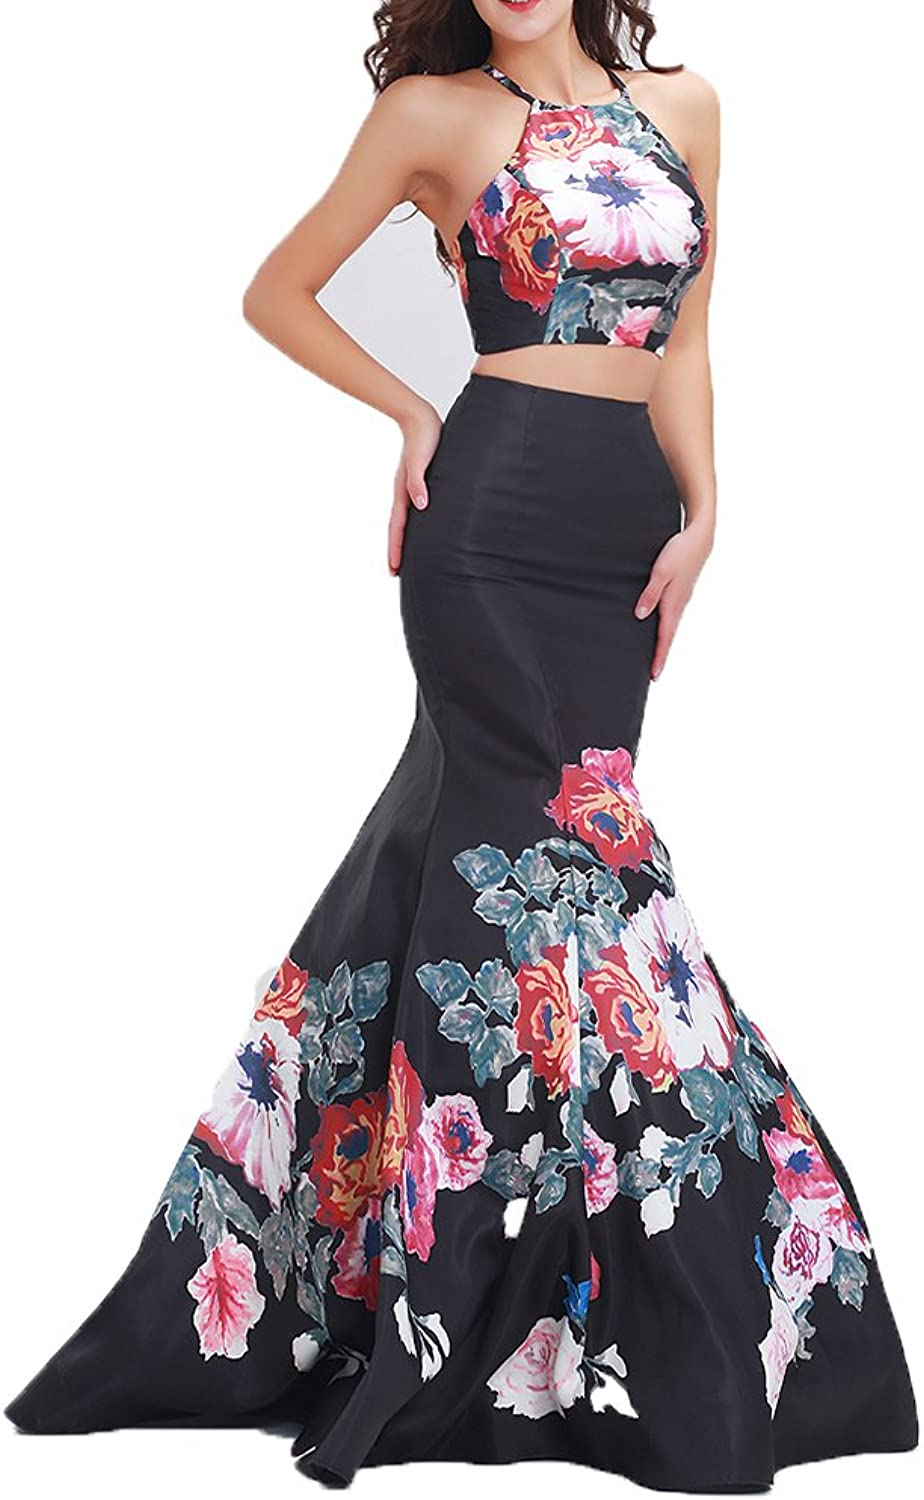 Chenghouse Two Piece Prom Dresses Satin Mermaid Evening Party Gowns